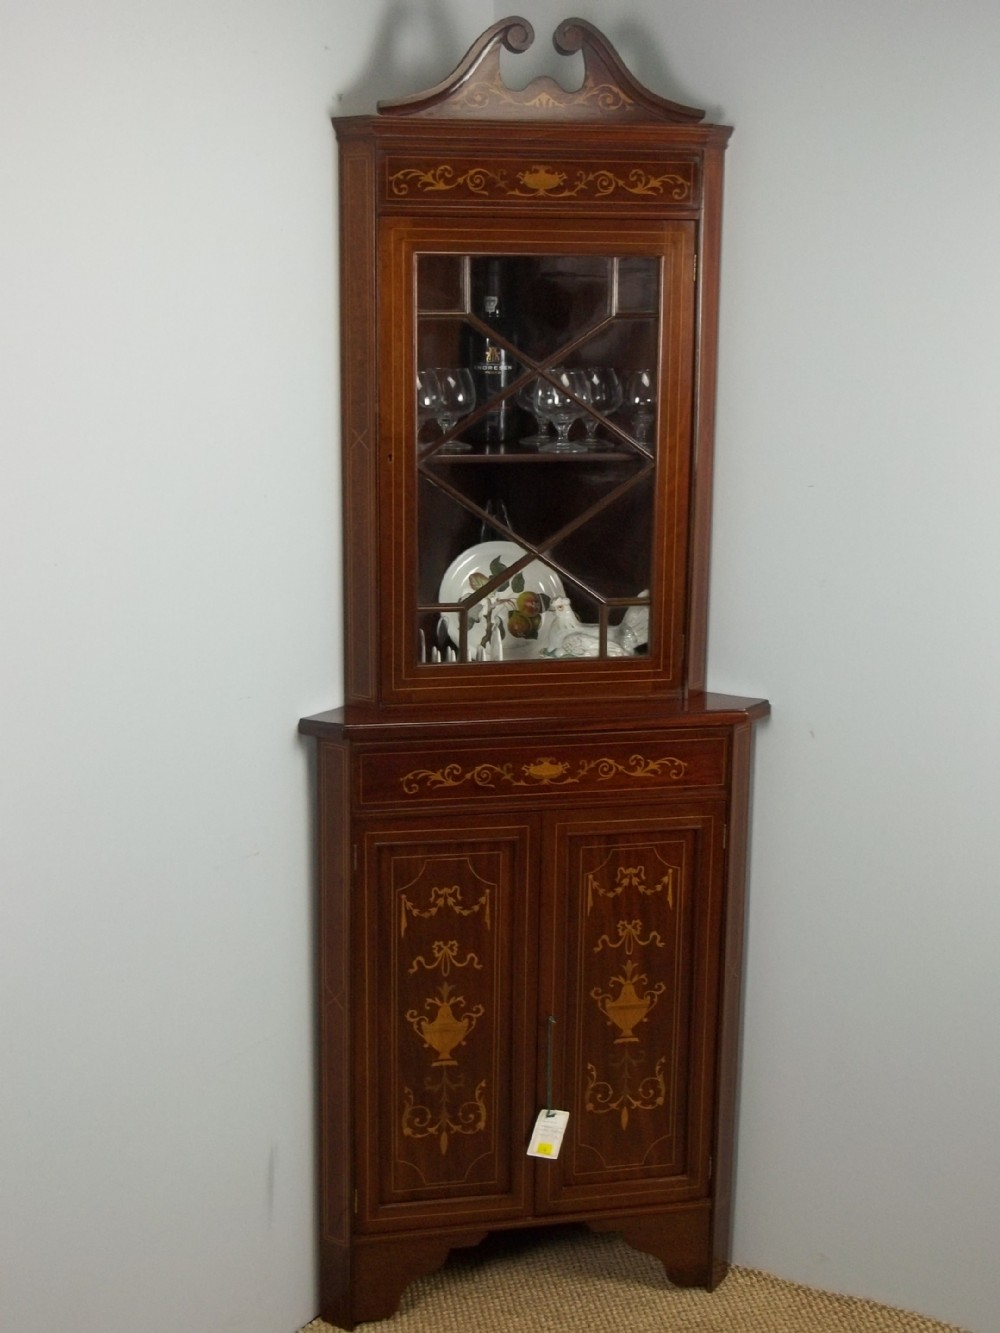 a mahogany edwardian marquetry inlaid two piece standing double height corner display glazed cabinet cupboard c1900